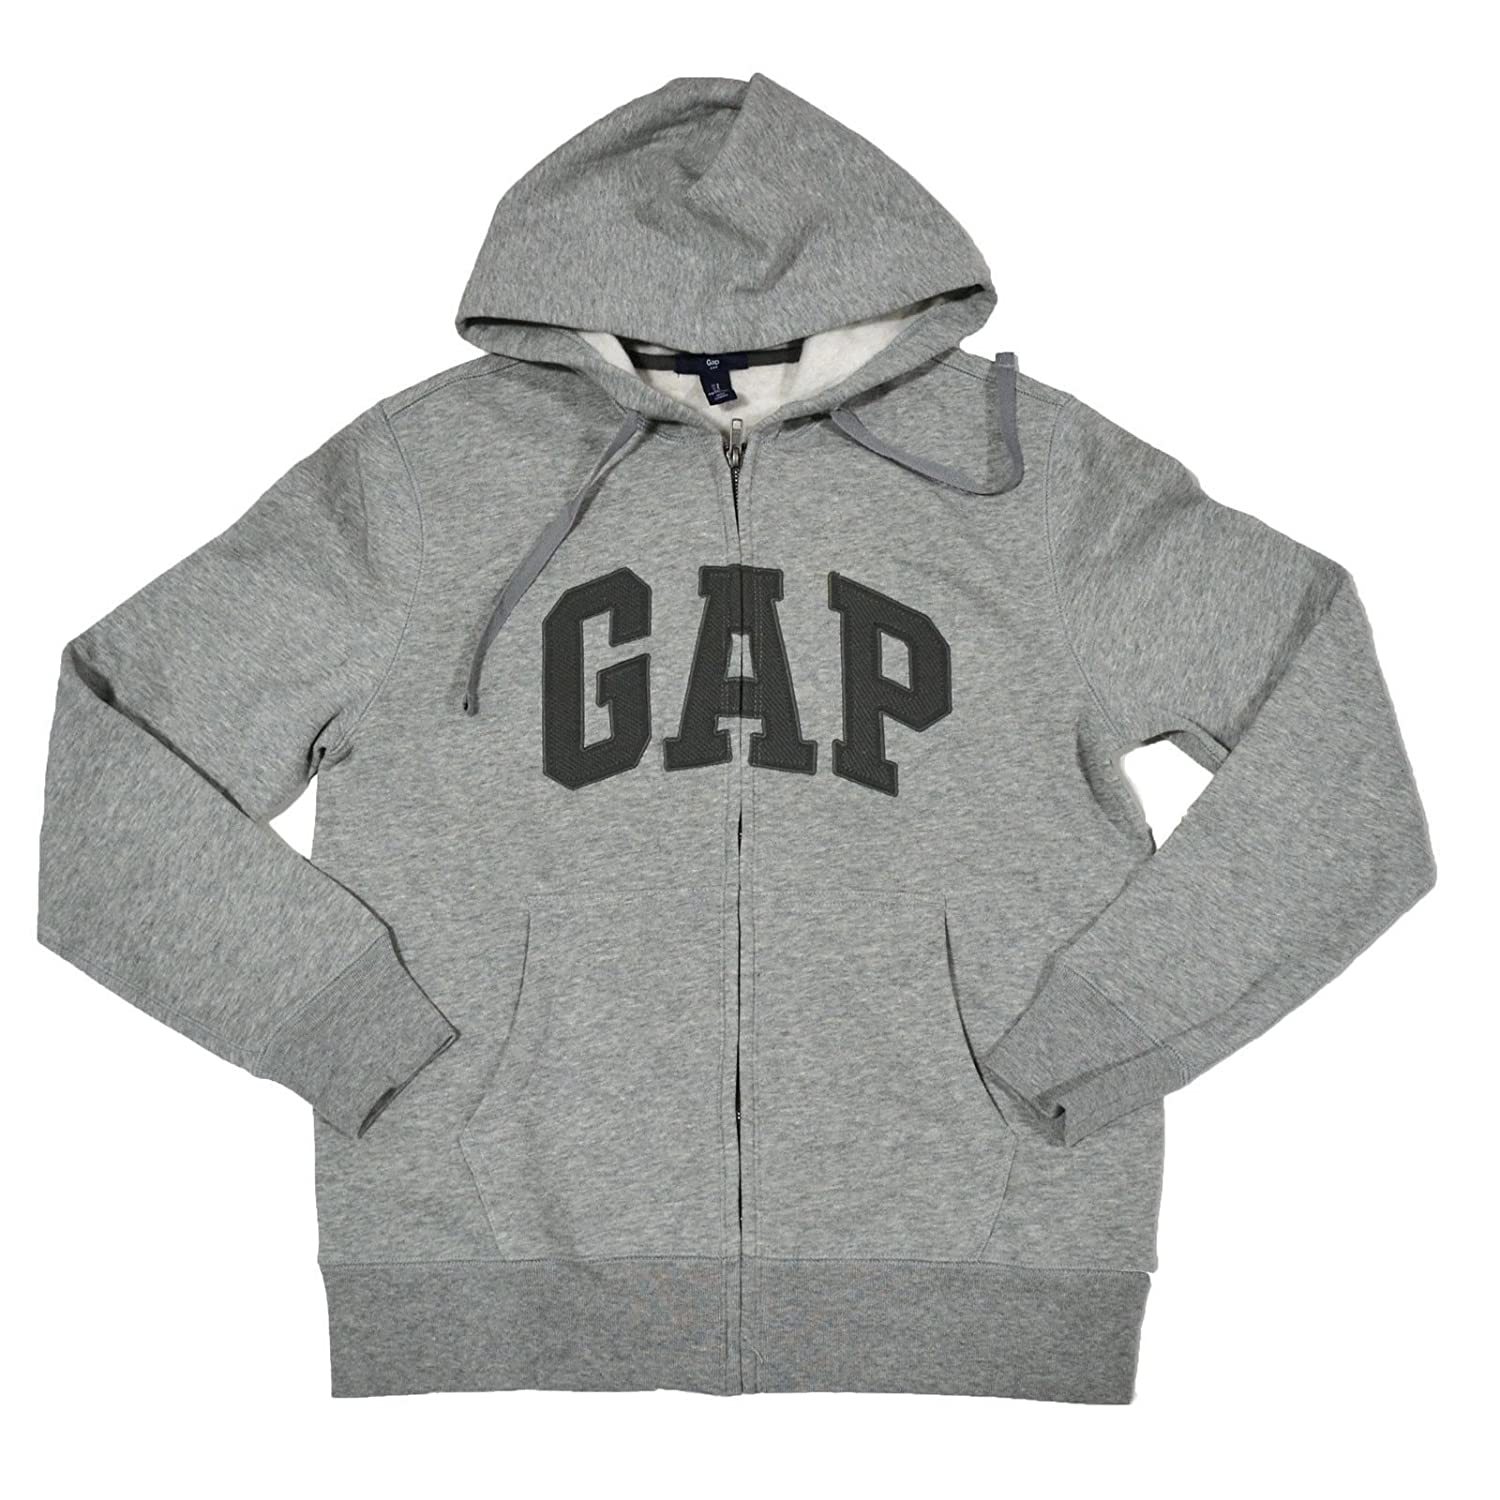 GAP Mens Fleece Arch Logo Full Zip Hoodie touch screen panel protect flim overlay 6av6 640 0da01 0ax0 for tp177a free shipping